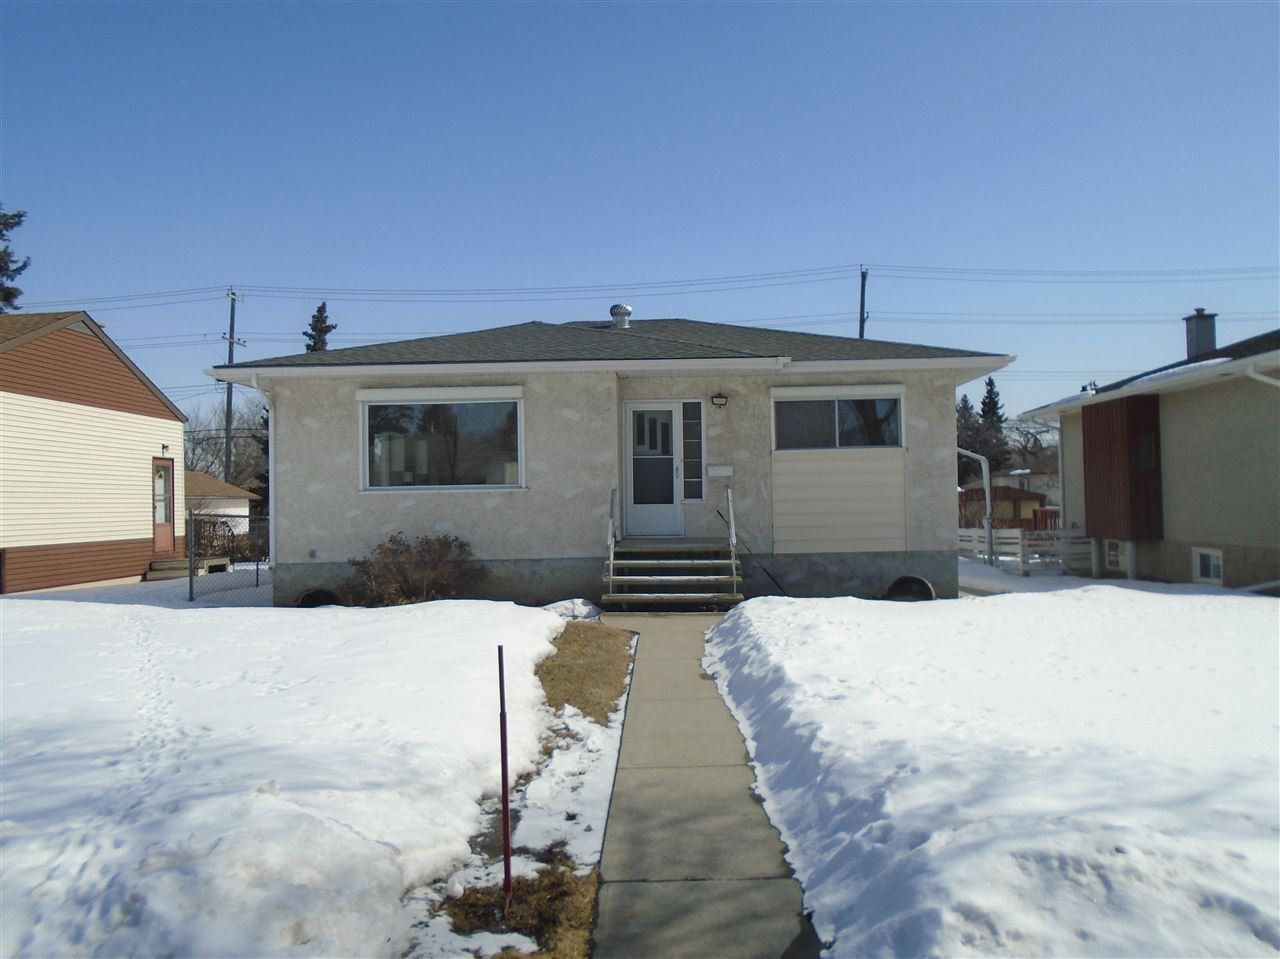 12135 128 Street NW, 3 bed, 1.1 bath, at $303,900